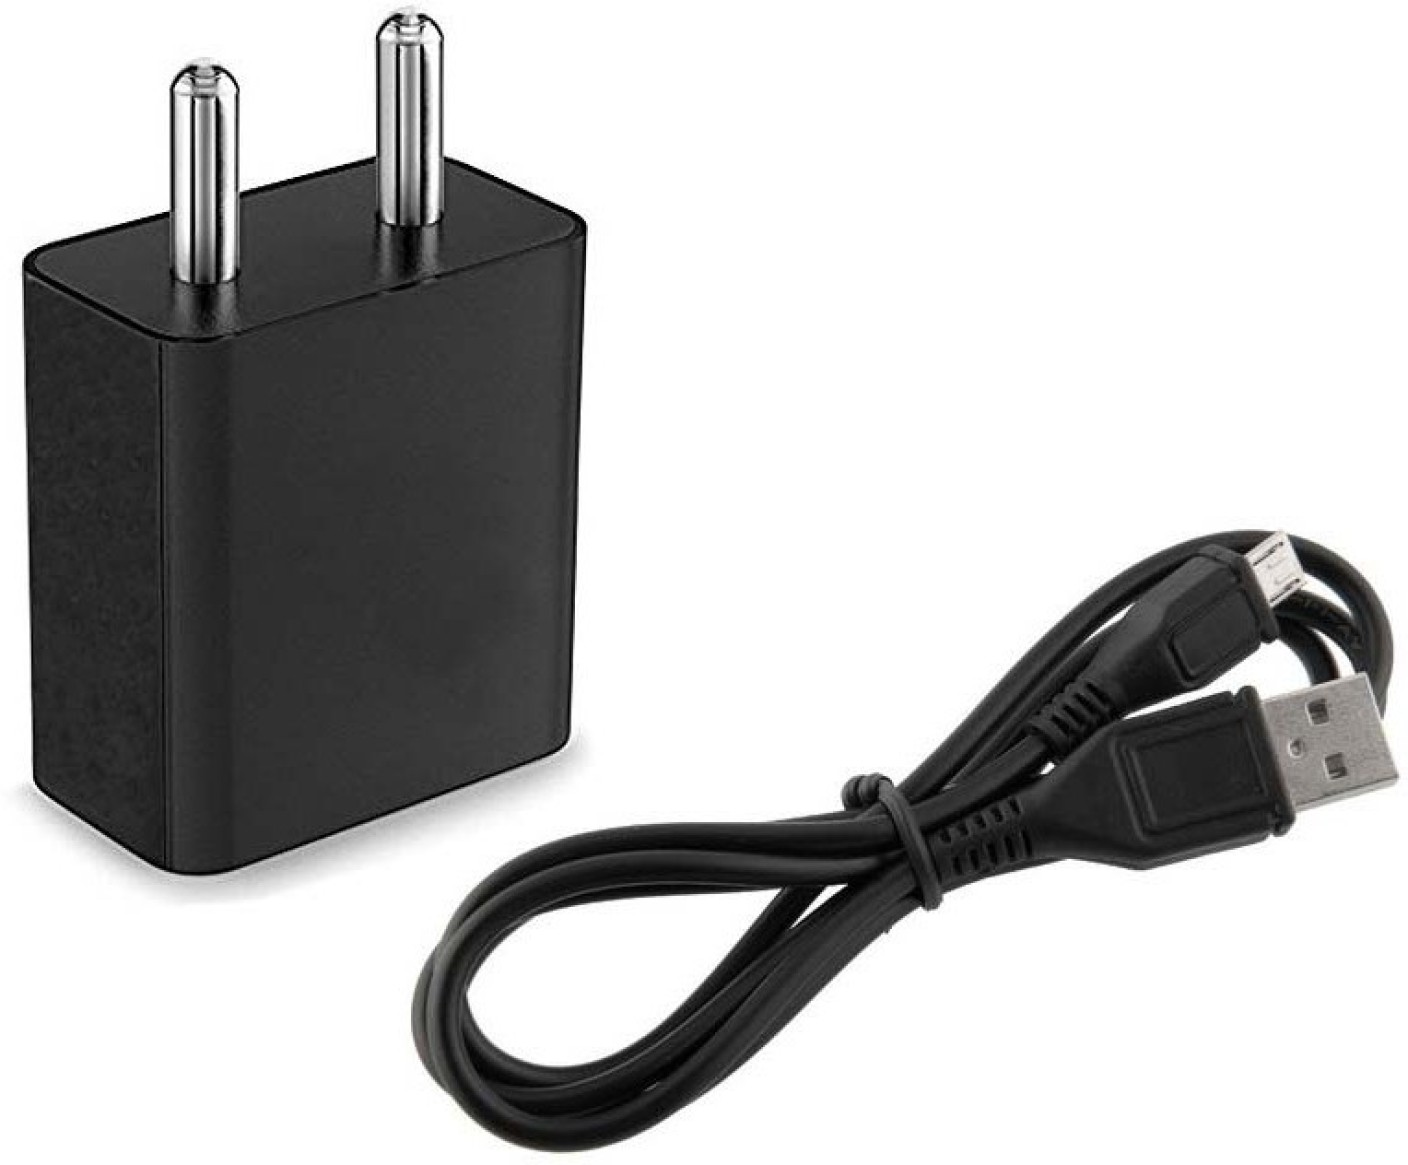 Cell phones amp accessories gt cell phone accessories gt chargers - Cell Phones Amp Accessories Gt Cell Phone Accessories Gt Cables Amp Adapters On Offer